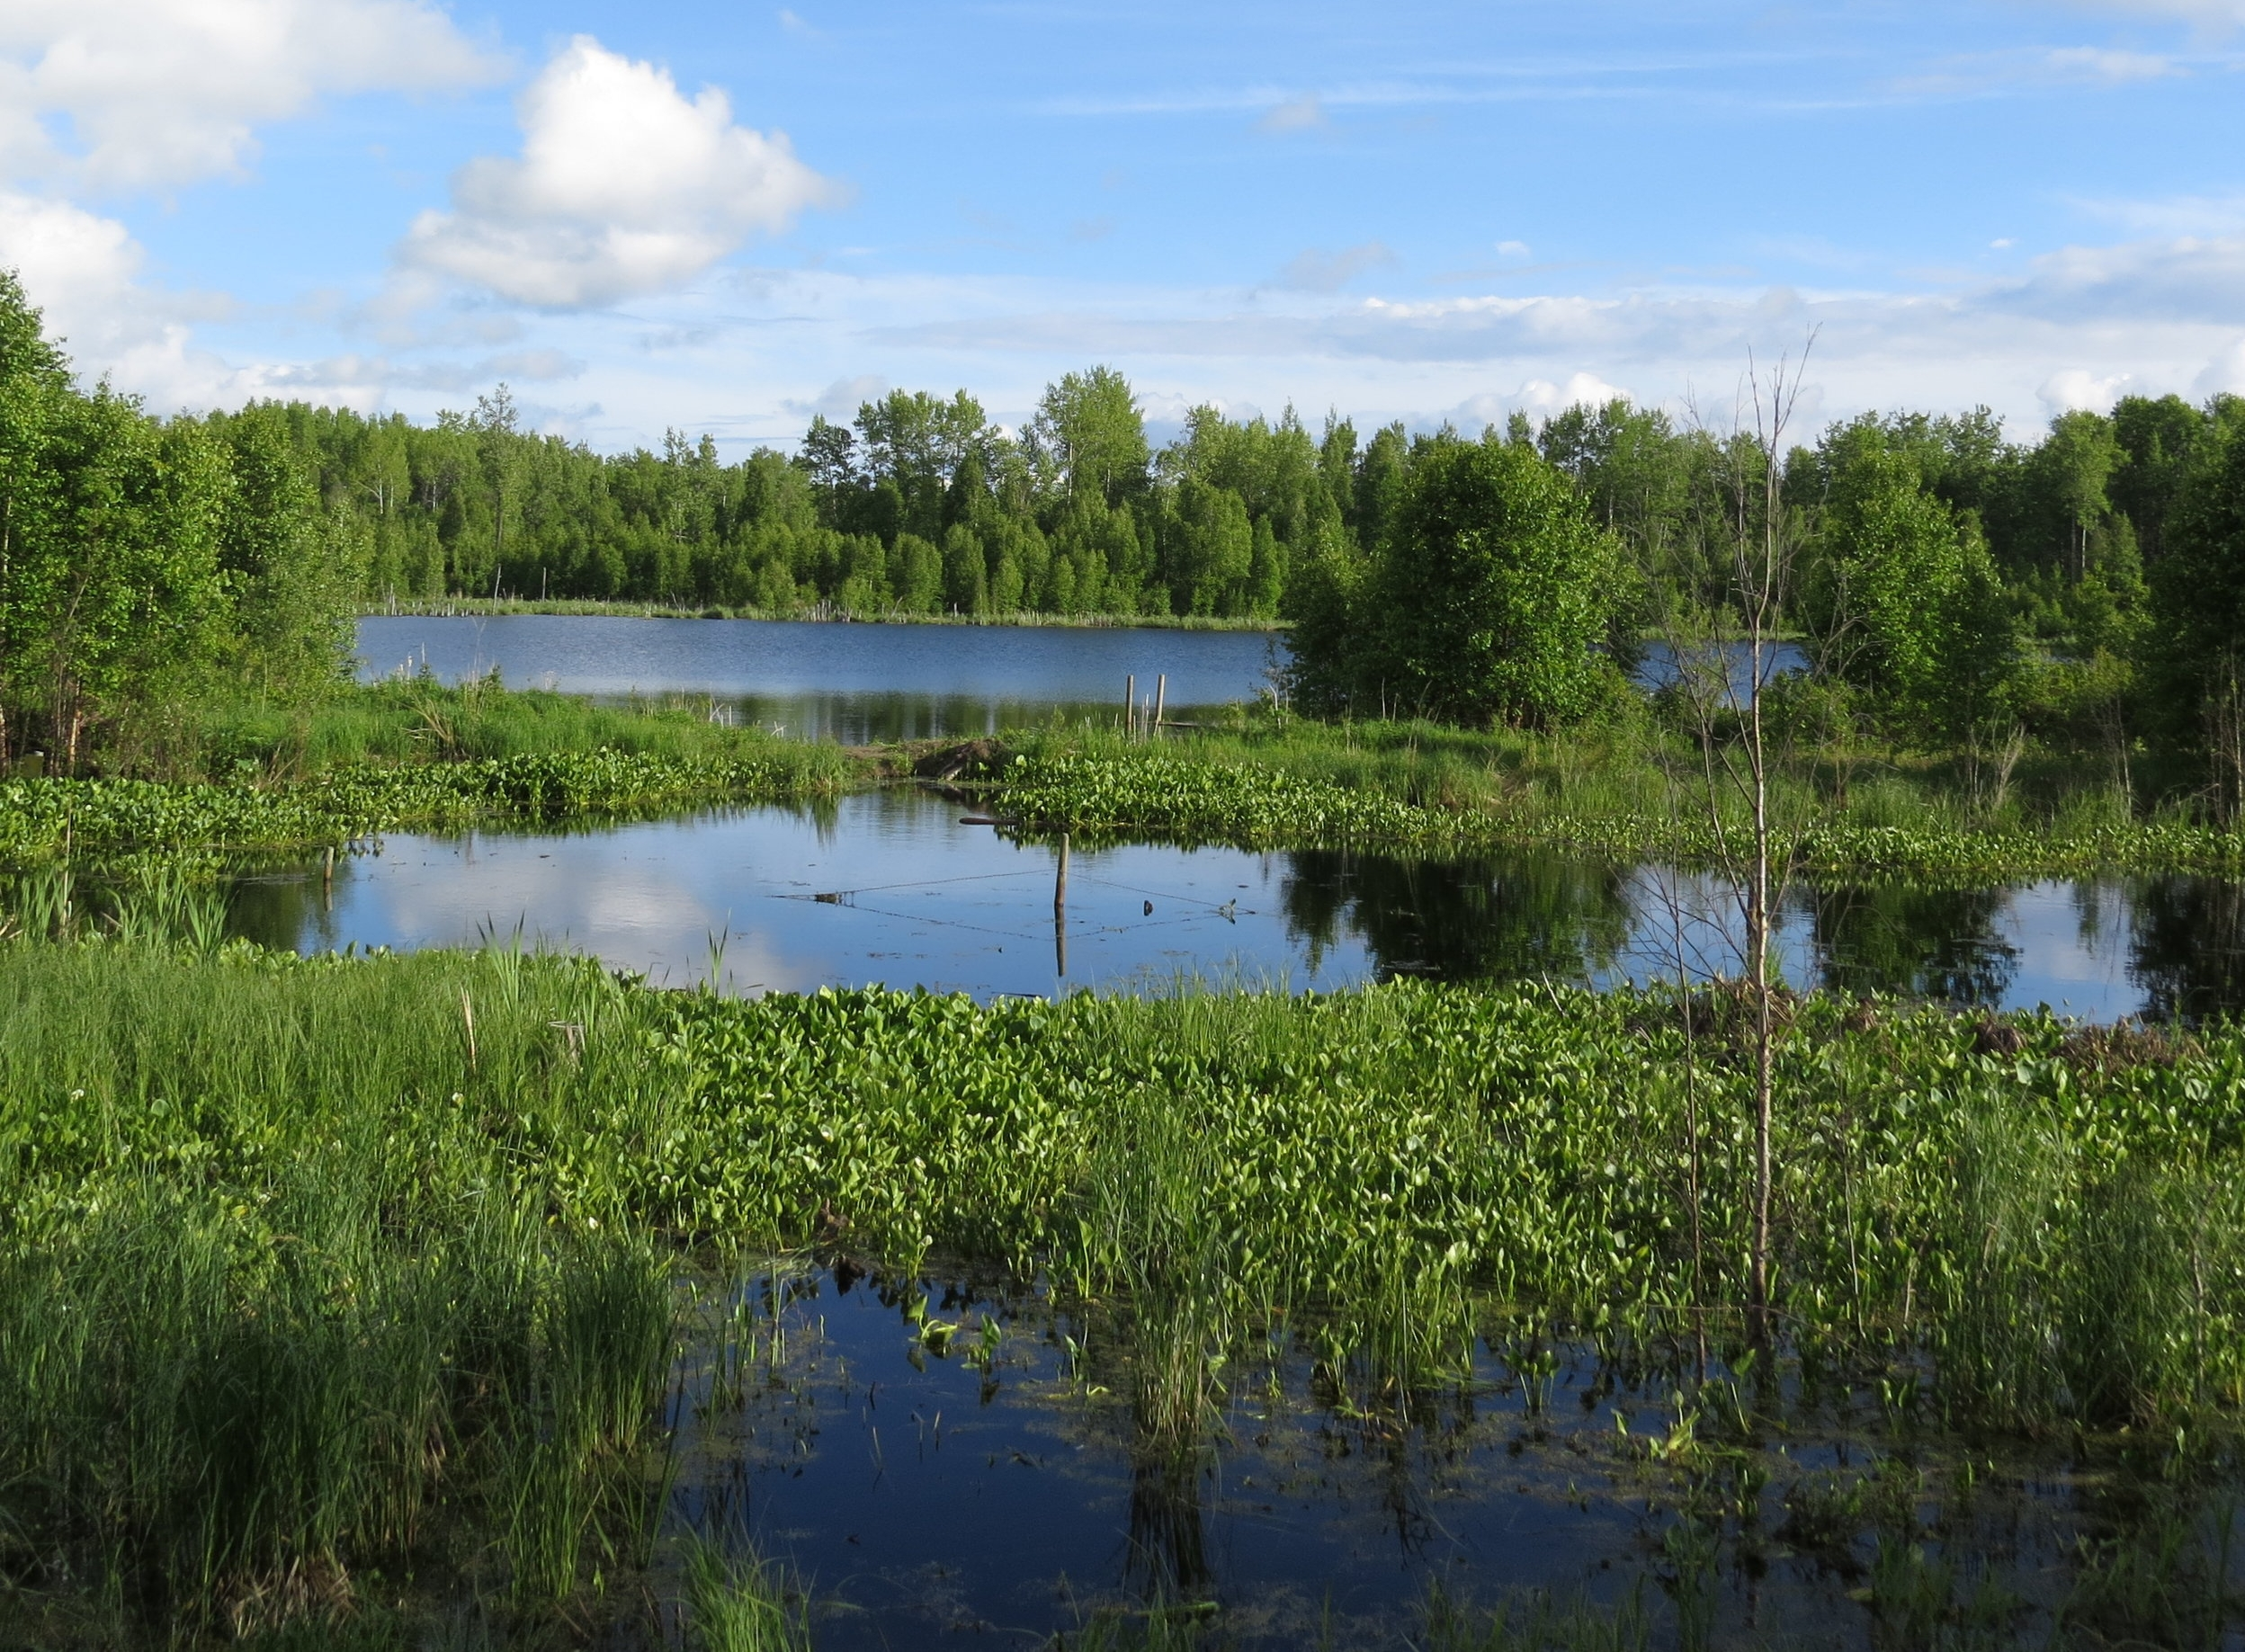 LU CARBYN NATURE SANCTUARY    Boreal forest and wetlands providing habitat for birds.   EXPLORE THIS LAND